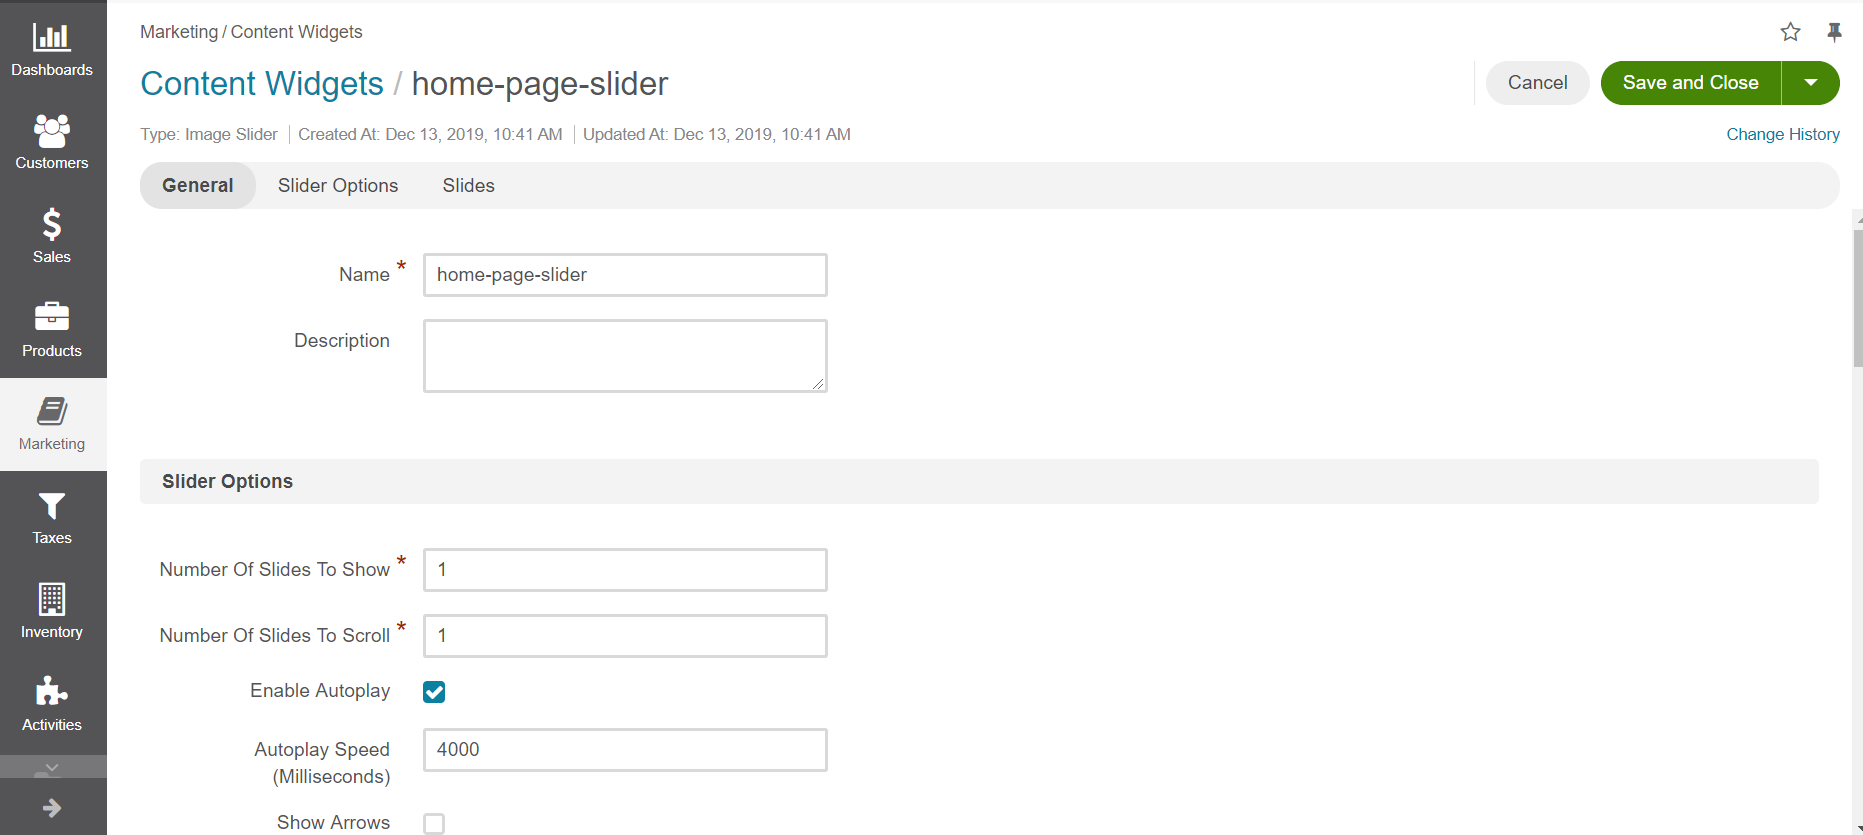 Image slider content widget form